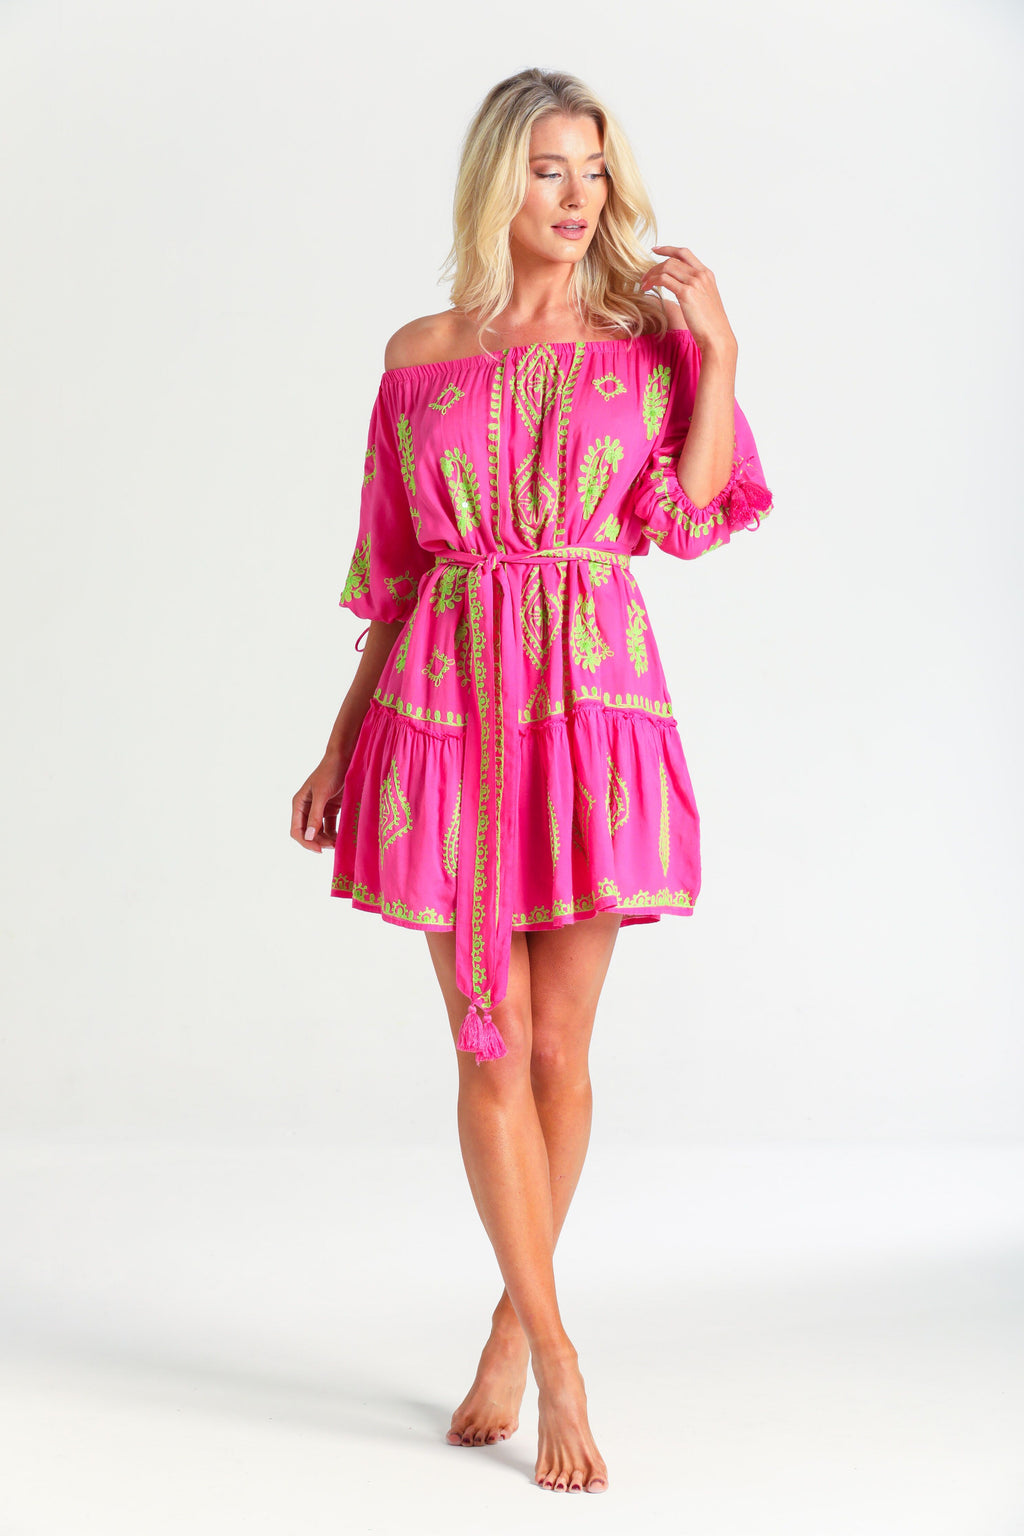 Pranella Off shoulder Fifi Embroidery Dress in Neon Pink Lime